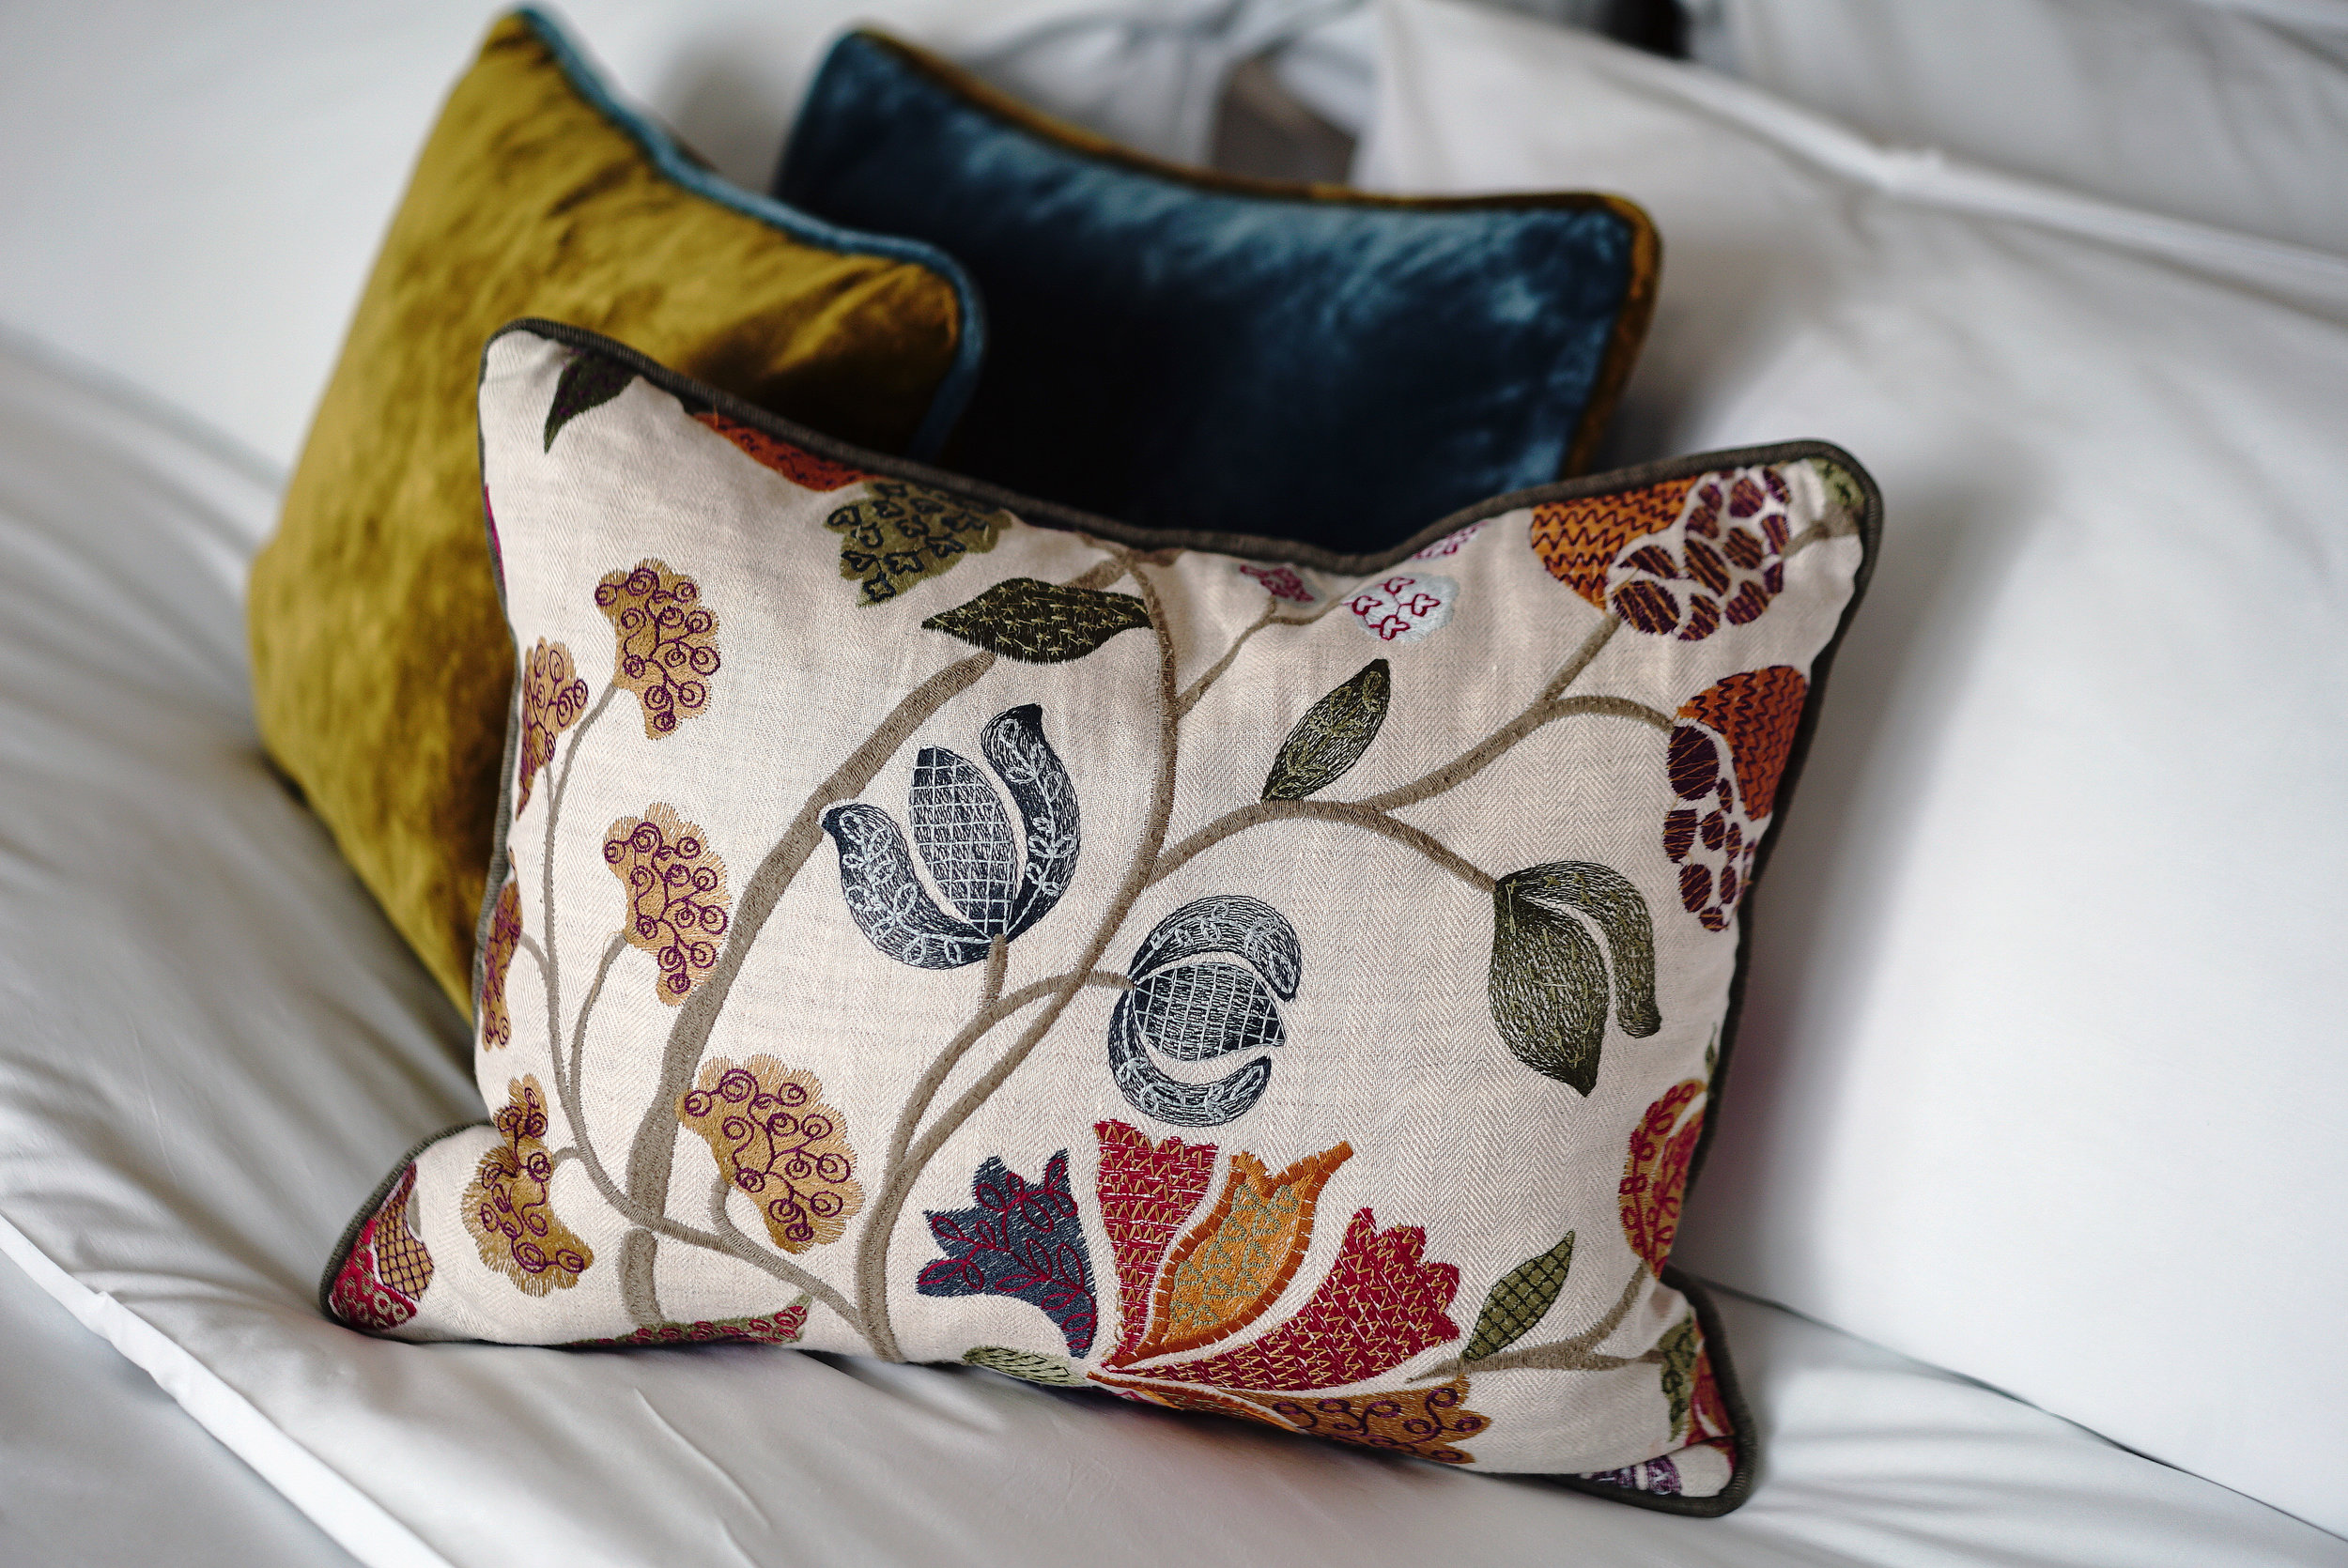 King Street Townhouse Room Bed Pillows.jpg